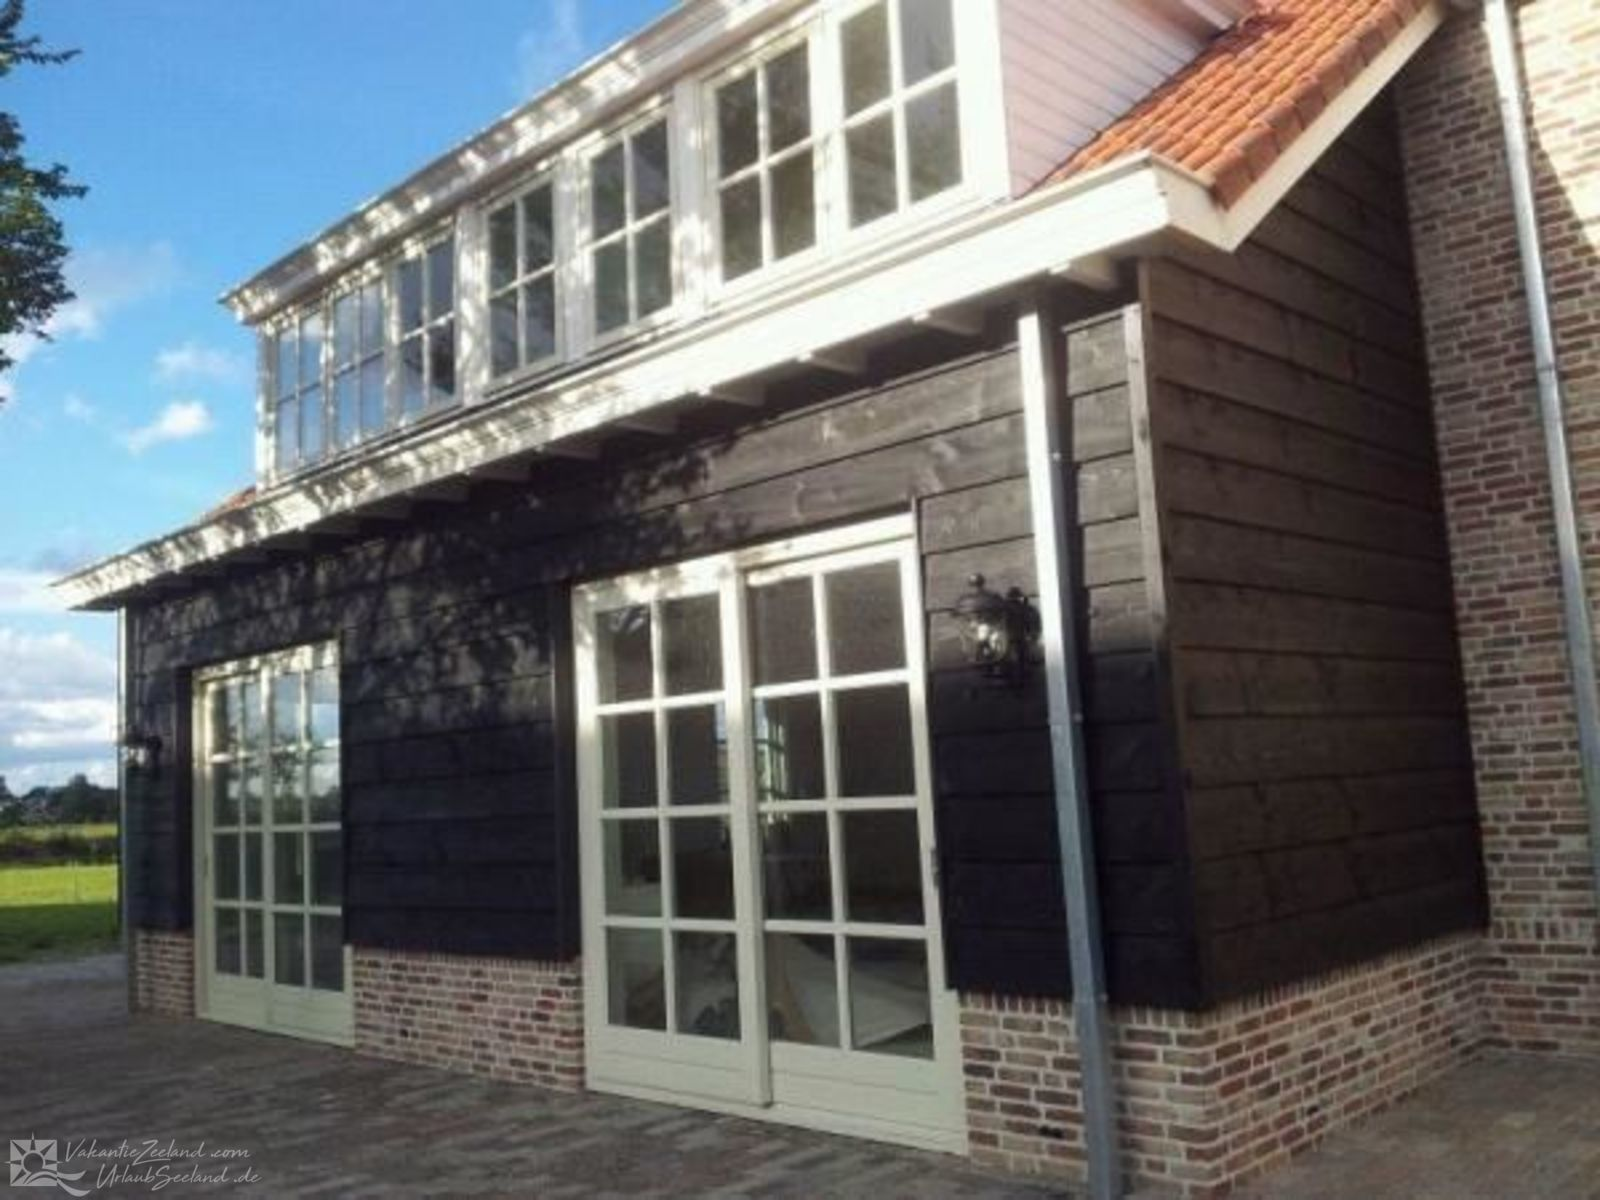 VZ216 Group accommodation Renesse